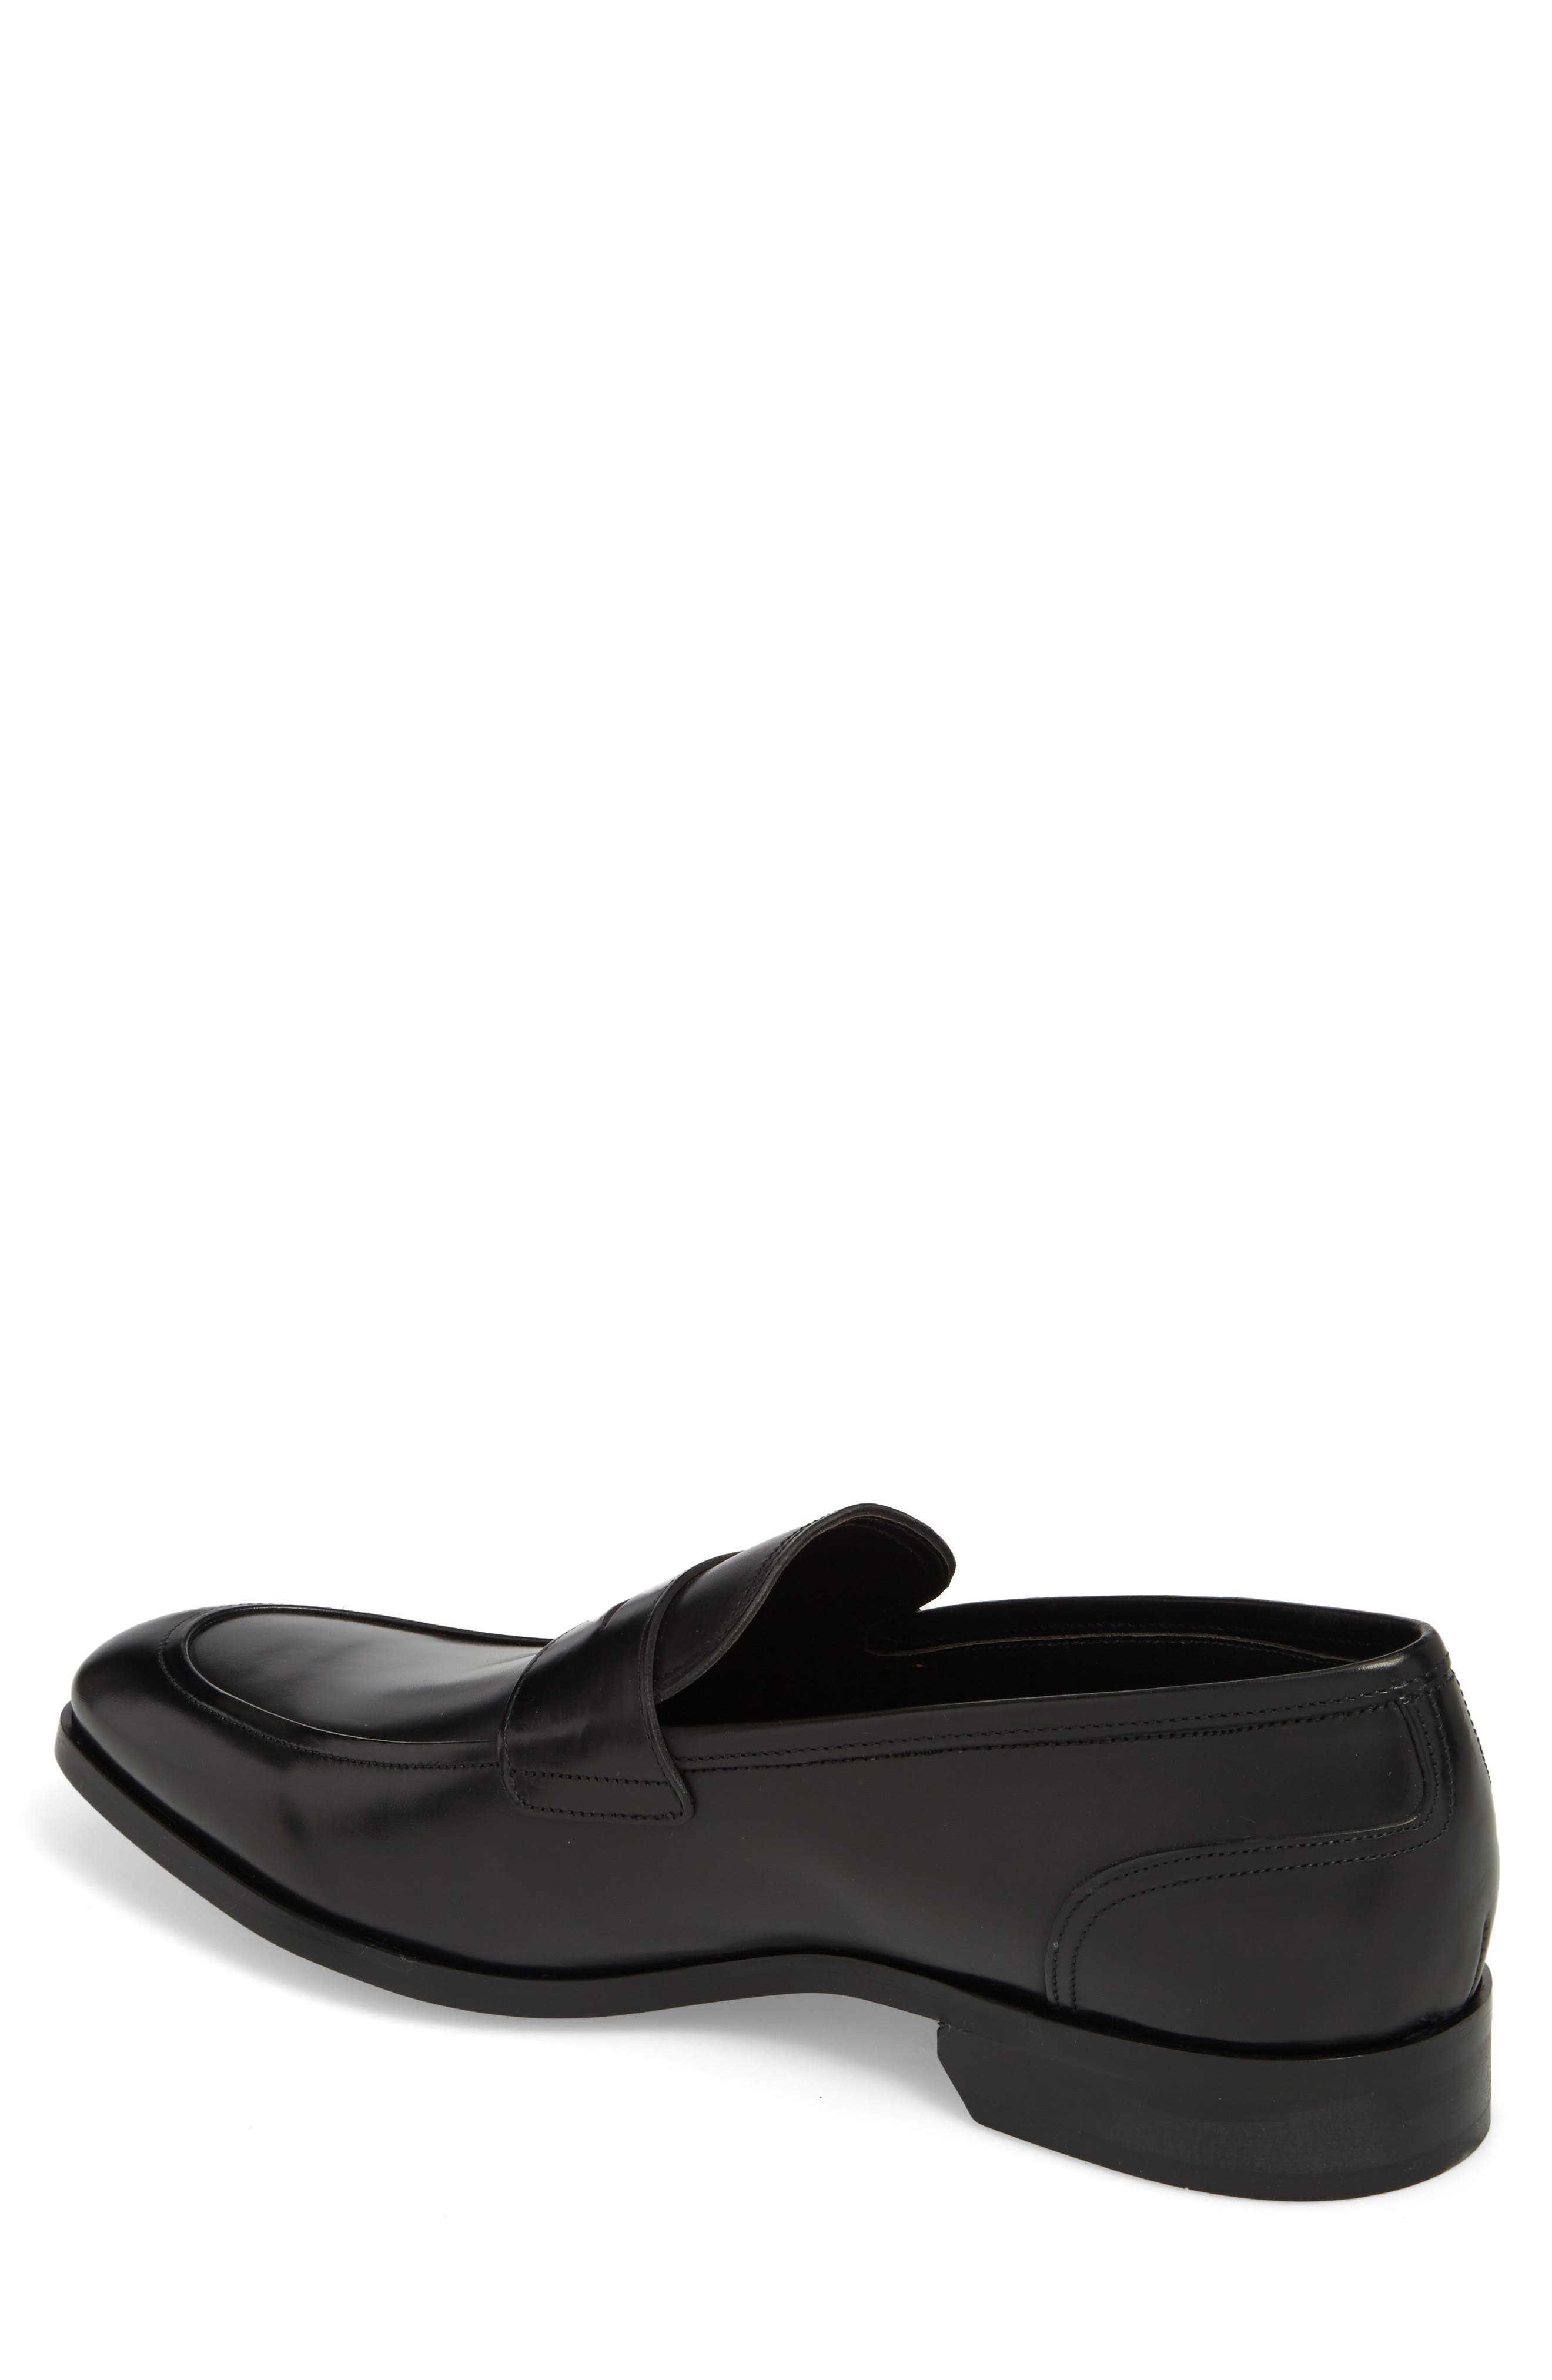 Deane Penny Loafer,                             Alternate thumbnail 2, color,                             BLACK LEATHER